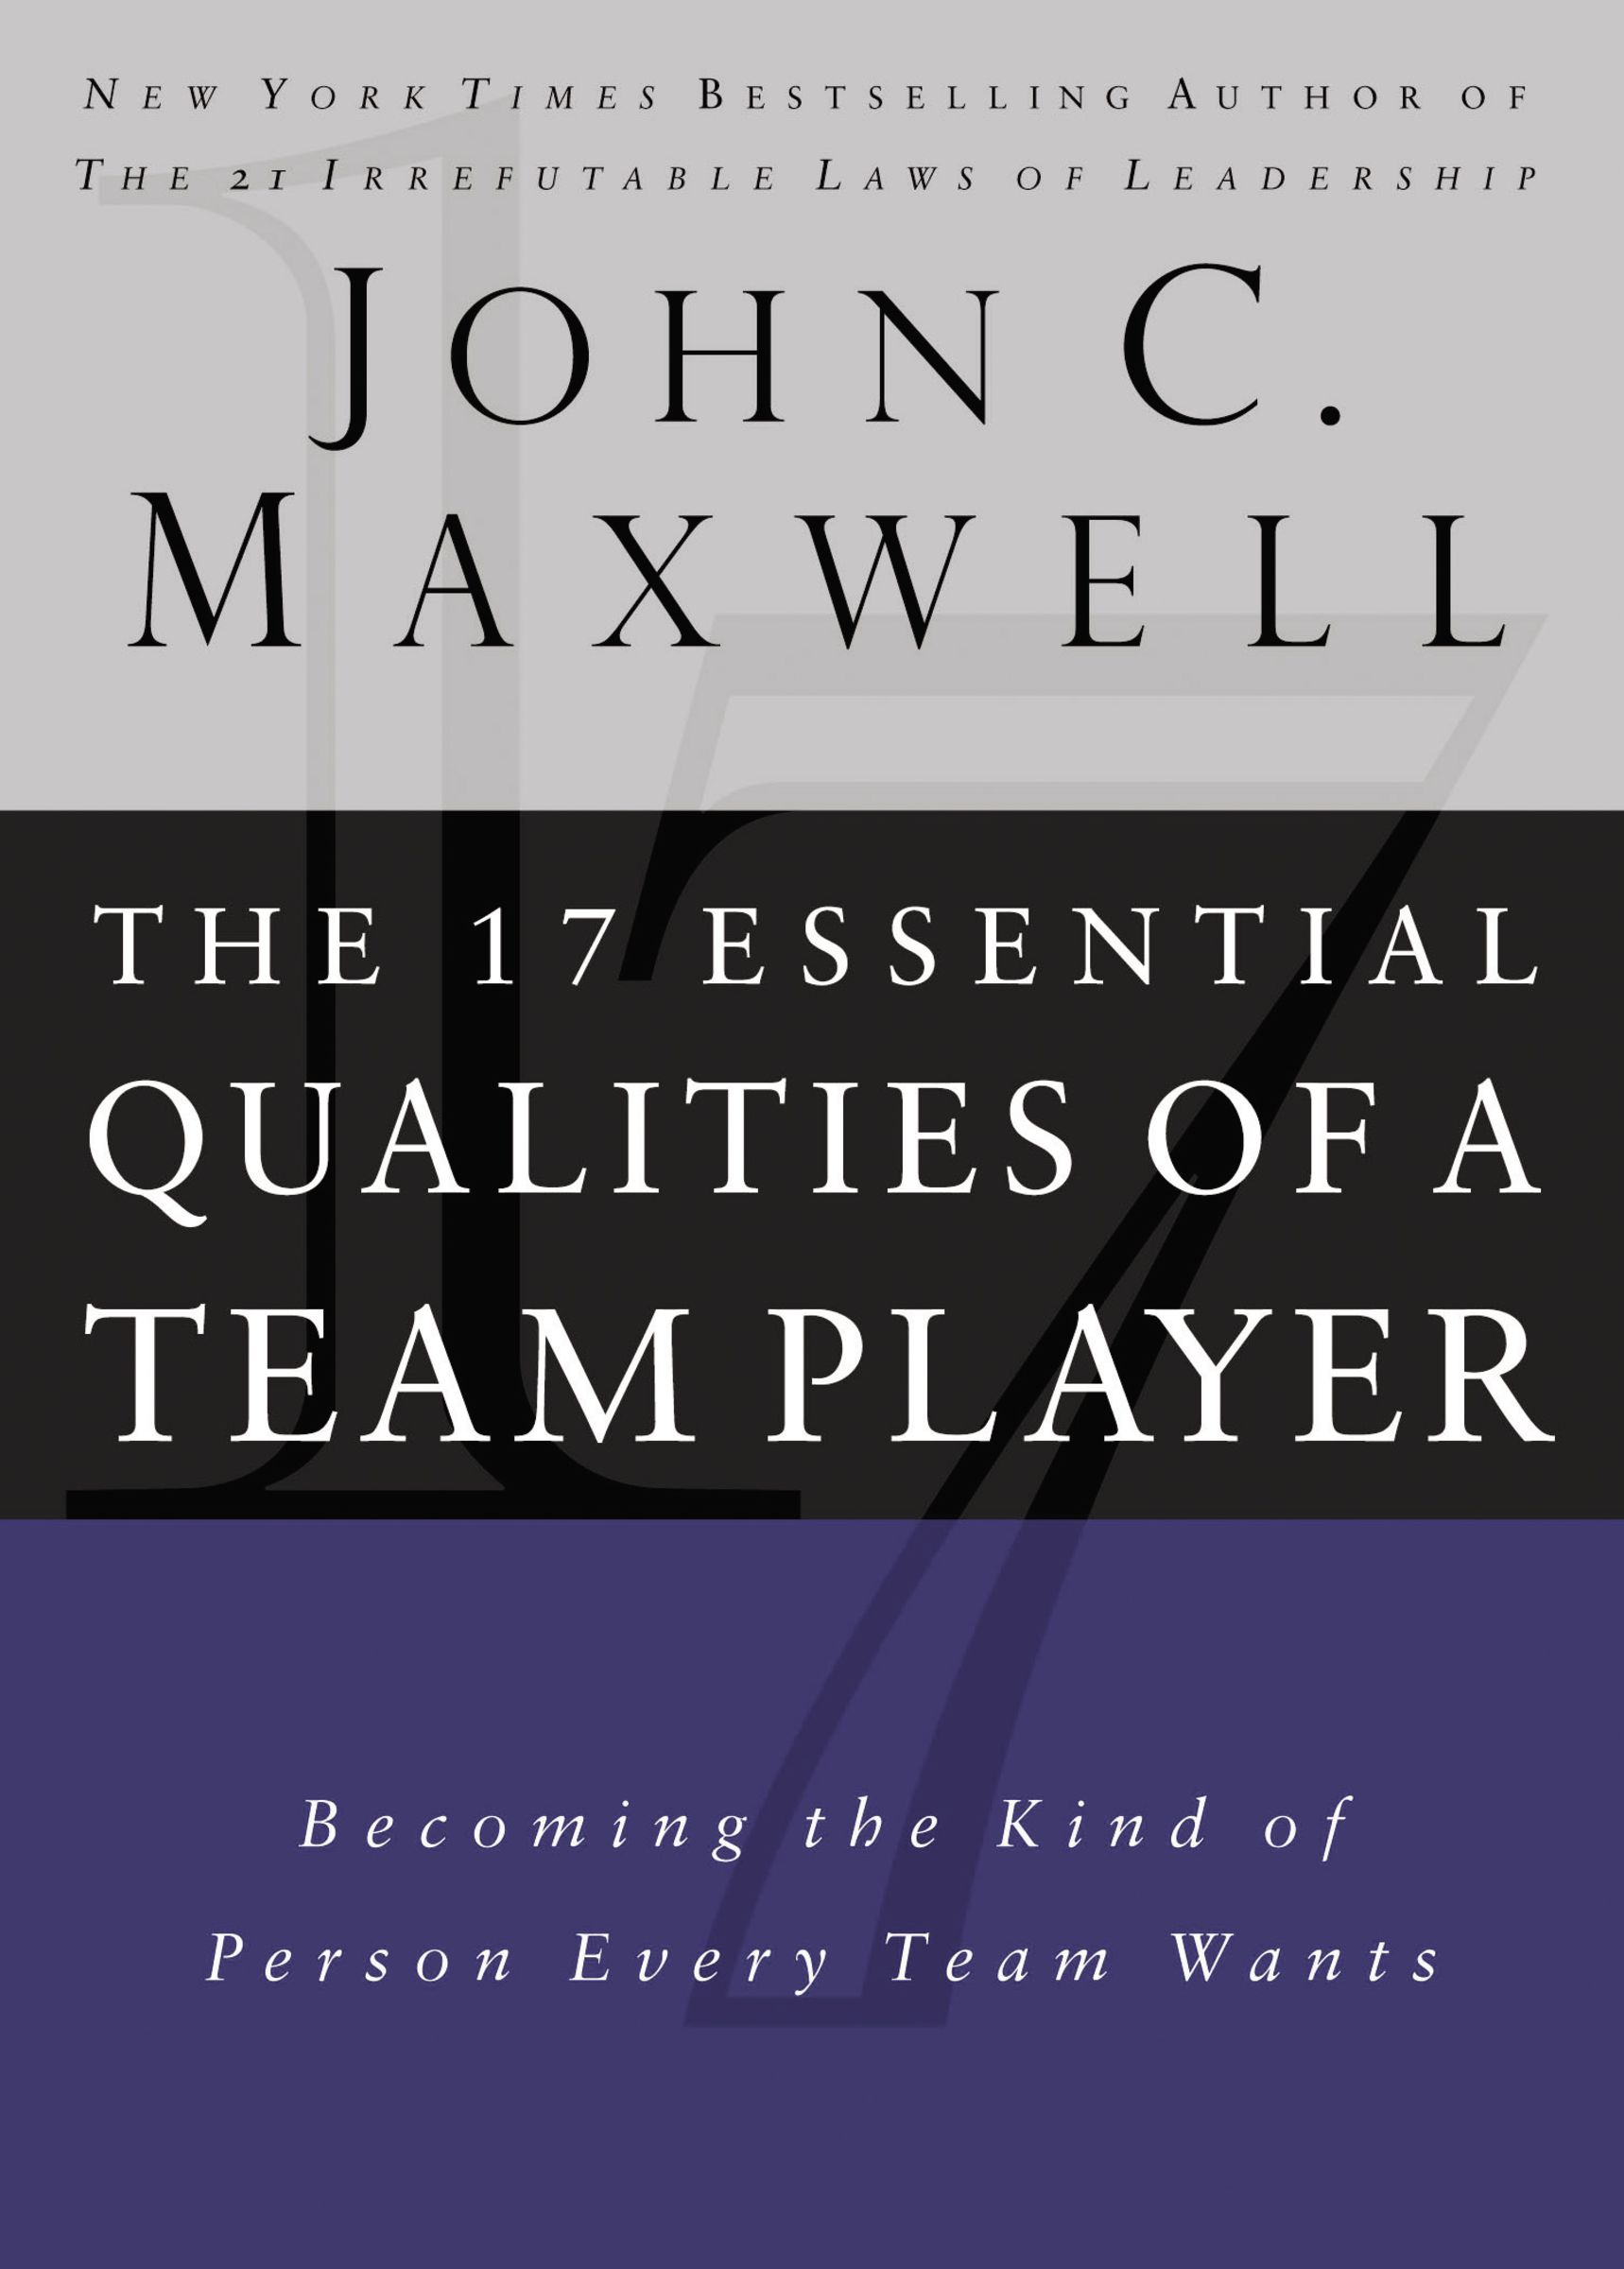 17 Essential Qualities of a Team Player